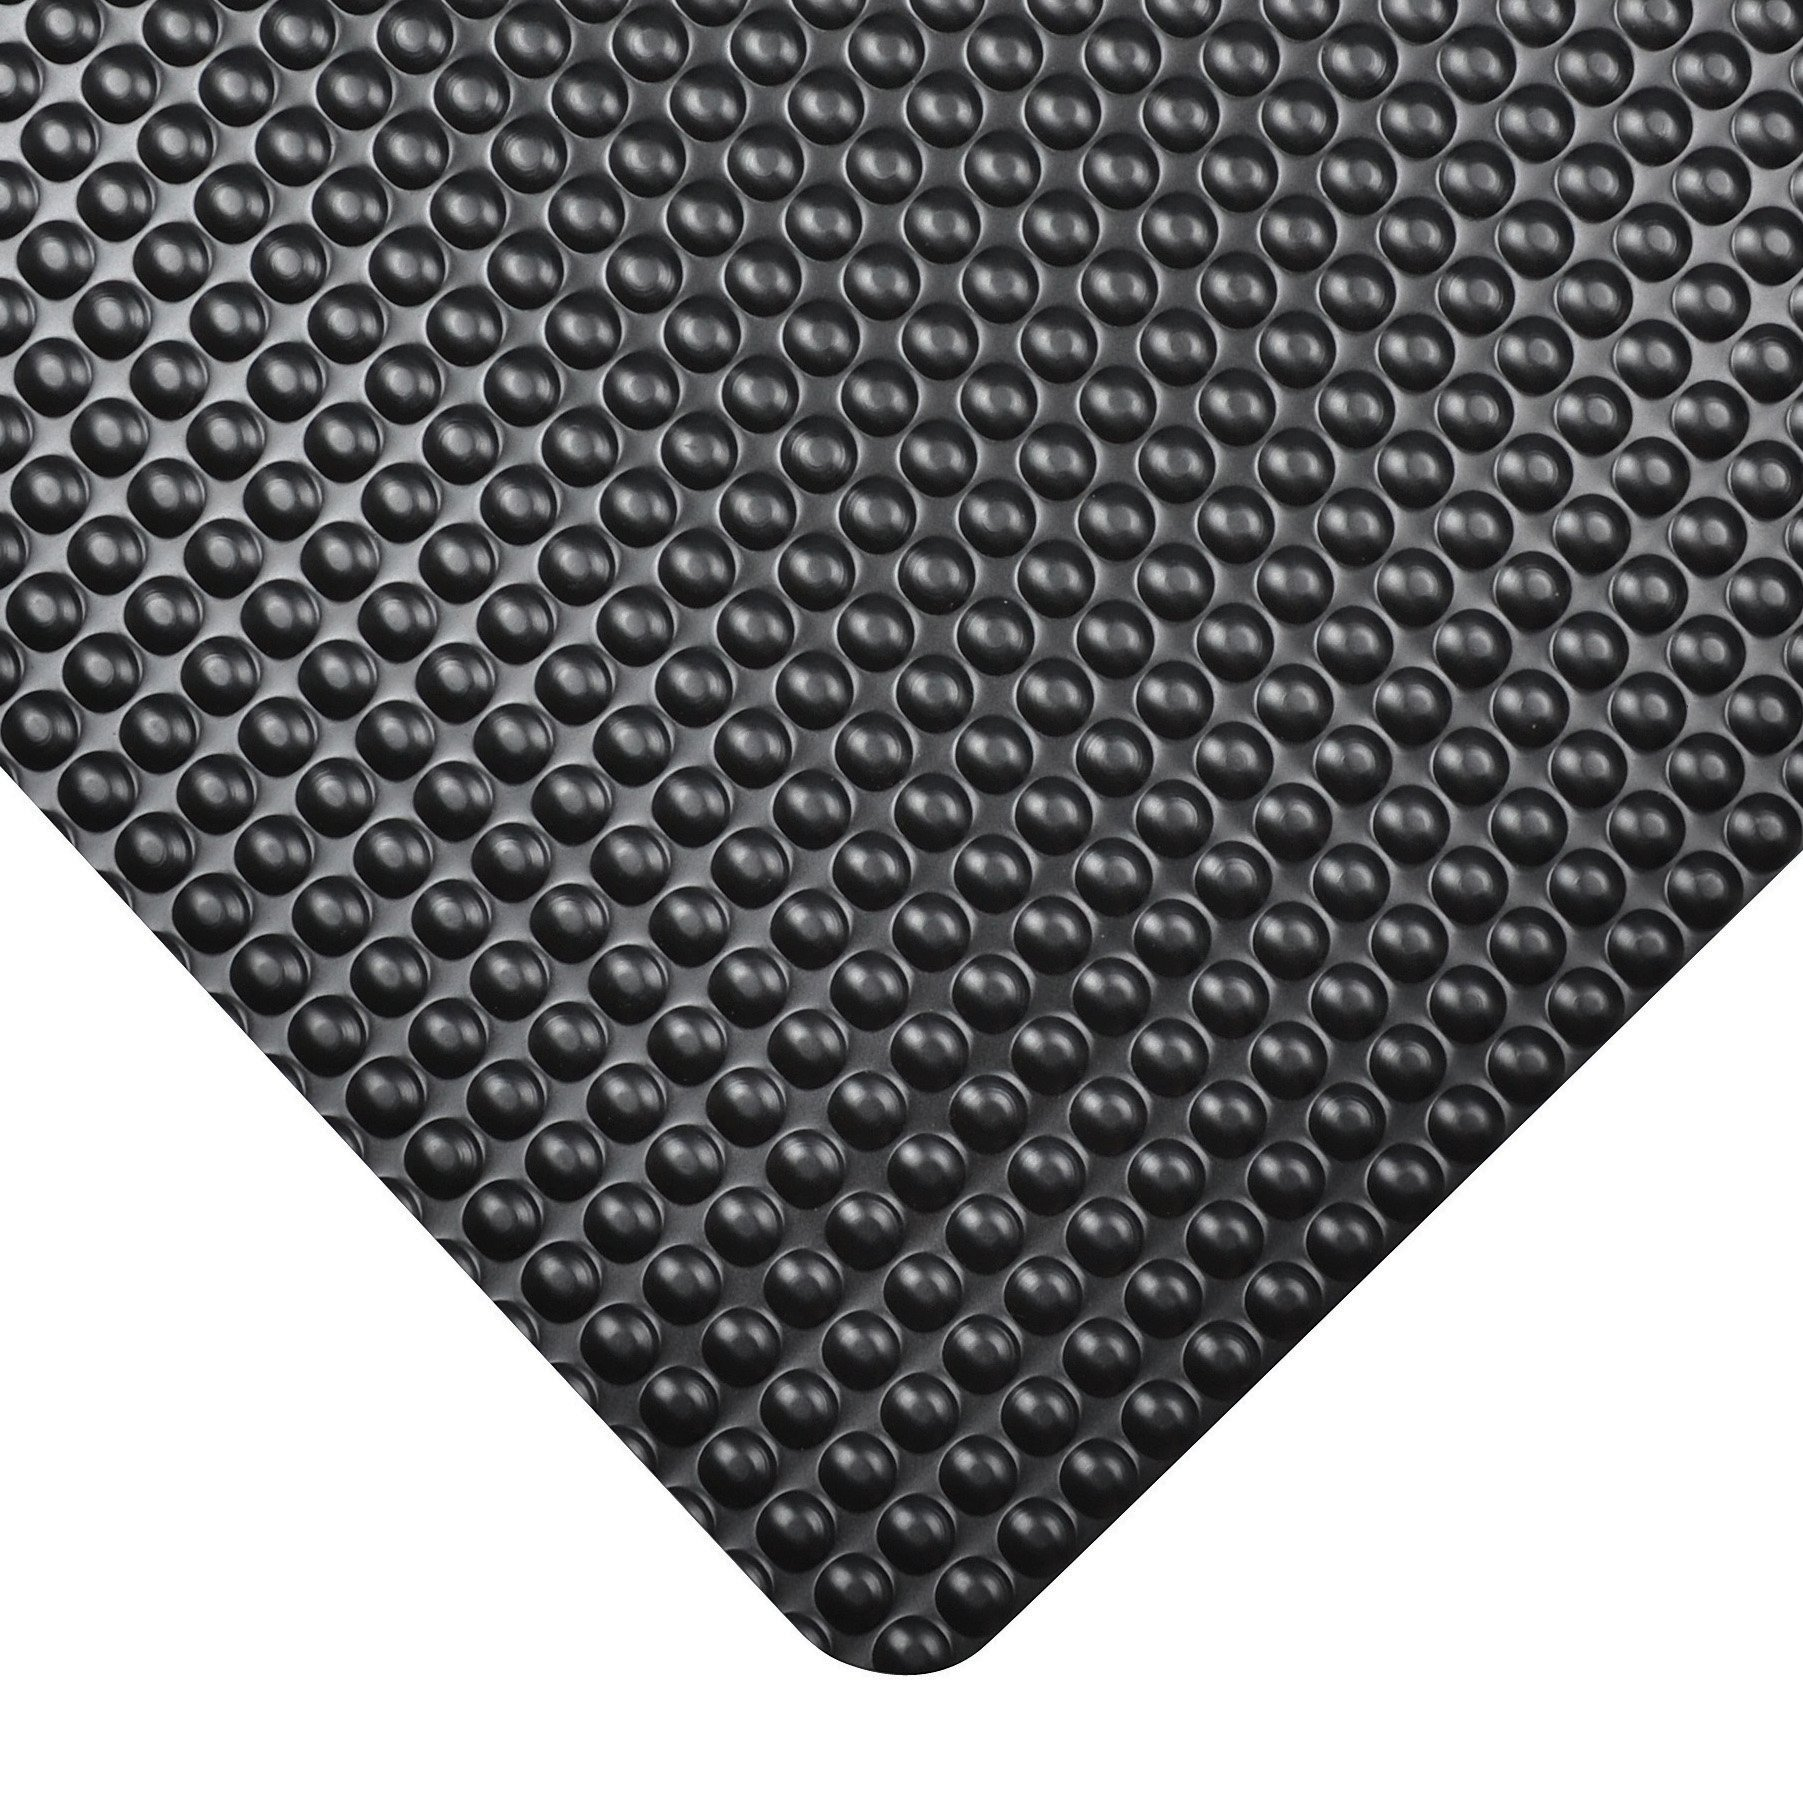 NoTrax 982 Bubble Trax Grande Safety/Anti-Fatigue Floor Mat with Vinyl Top Surface, for Dry Areas, 3' Width x 5' Length x 1'' Thickness, Black